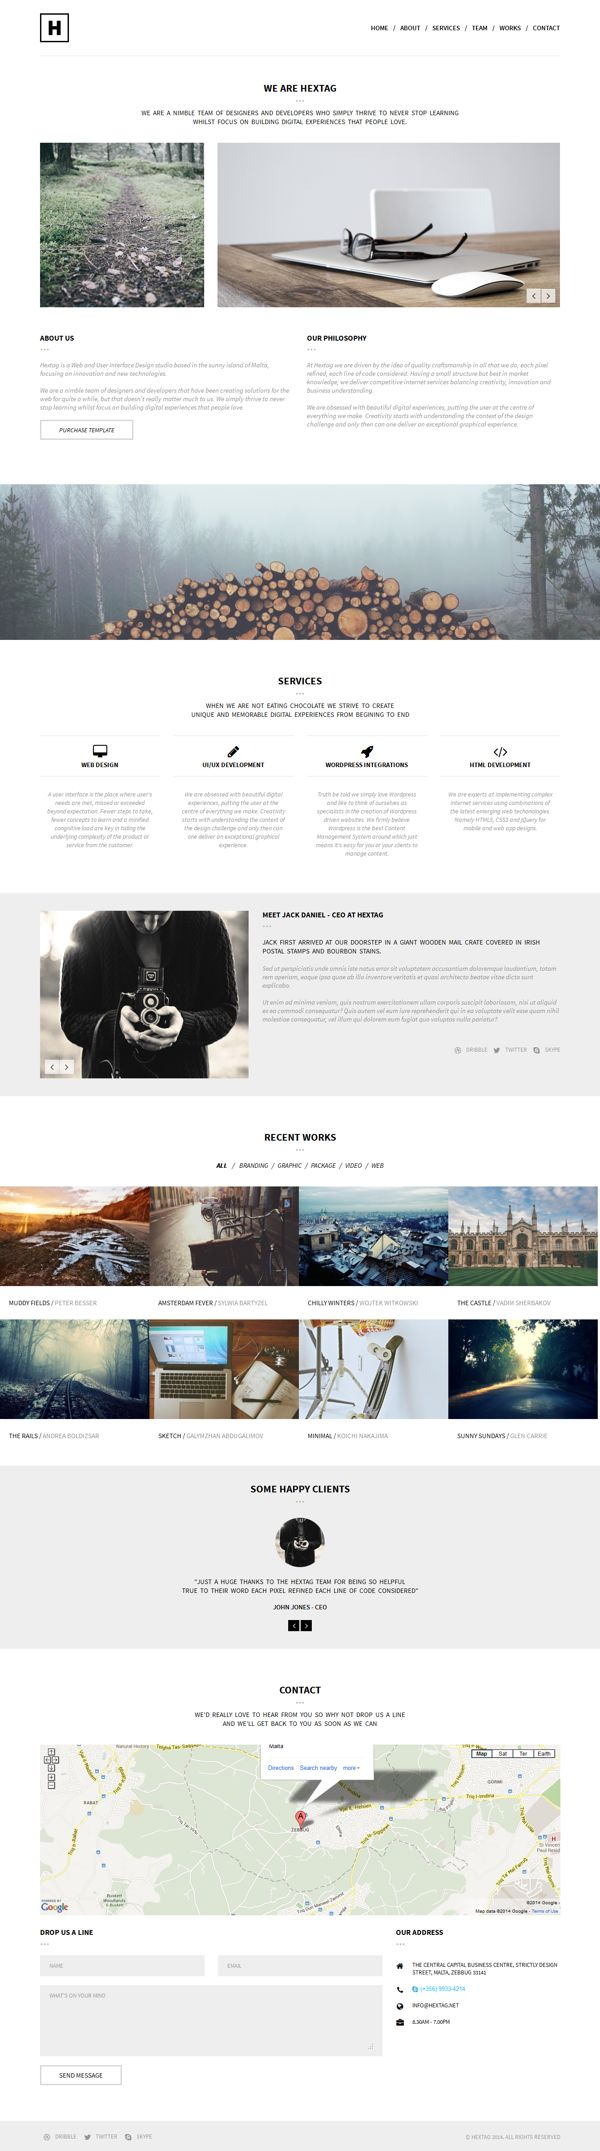 H - Minimal Theme (Apple Style) by WordPress Design Awards, via Behance